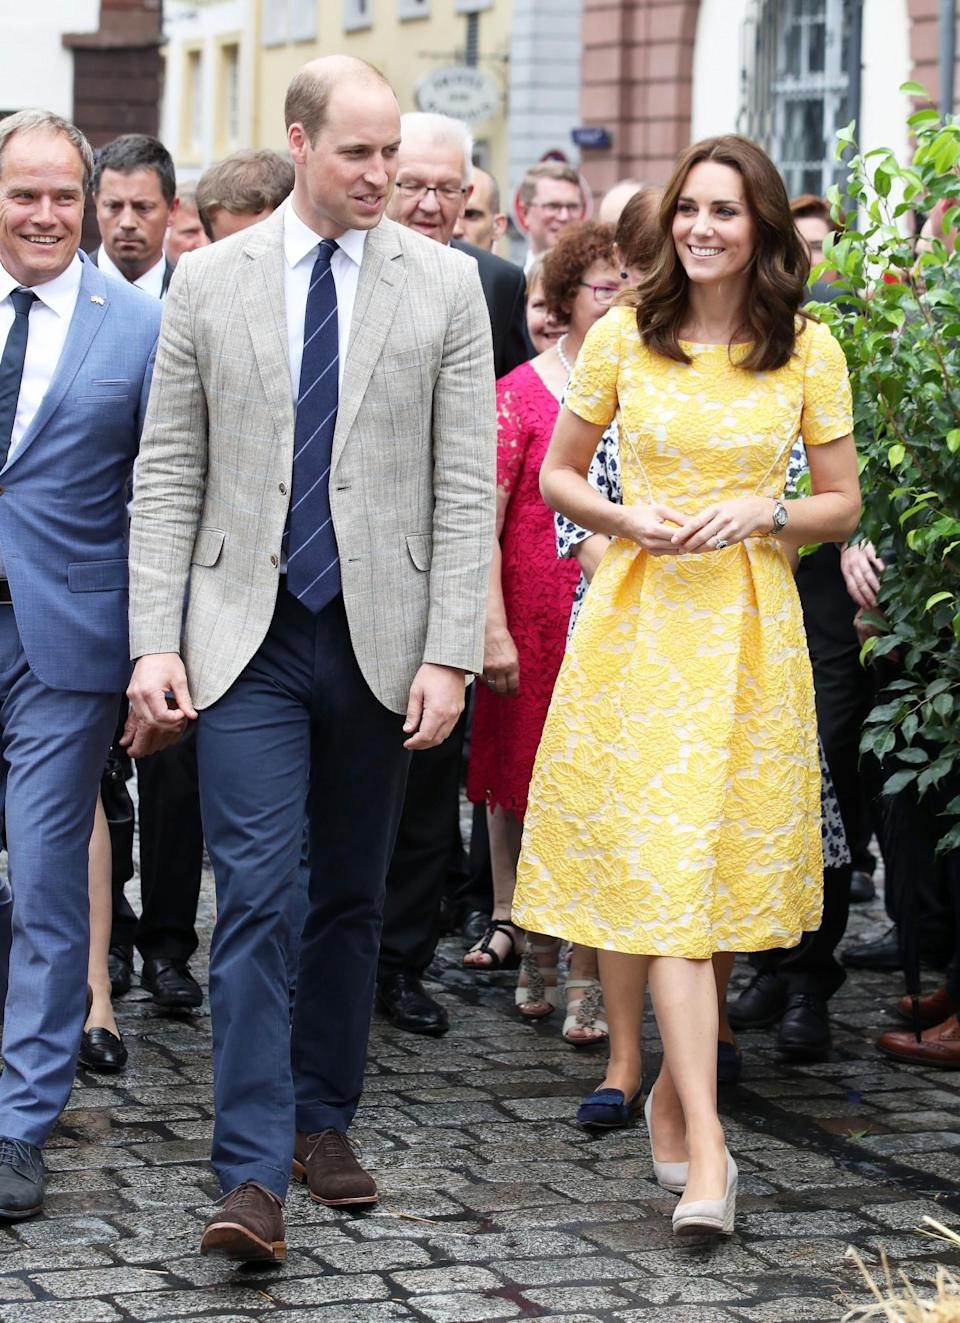 <p><b>For a visit to a German market, Kate wore a bespoke lemon dress by British favourite Jenny Packham. Monsoon wedges and statement Oscar de la Renta earrings completed the look. <br><em>[Photo: PA]</em> </b></p>